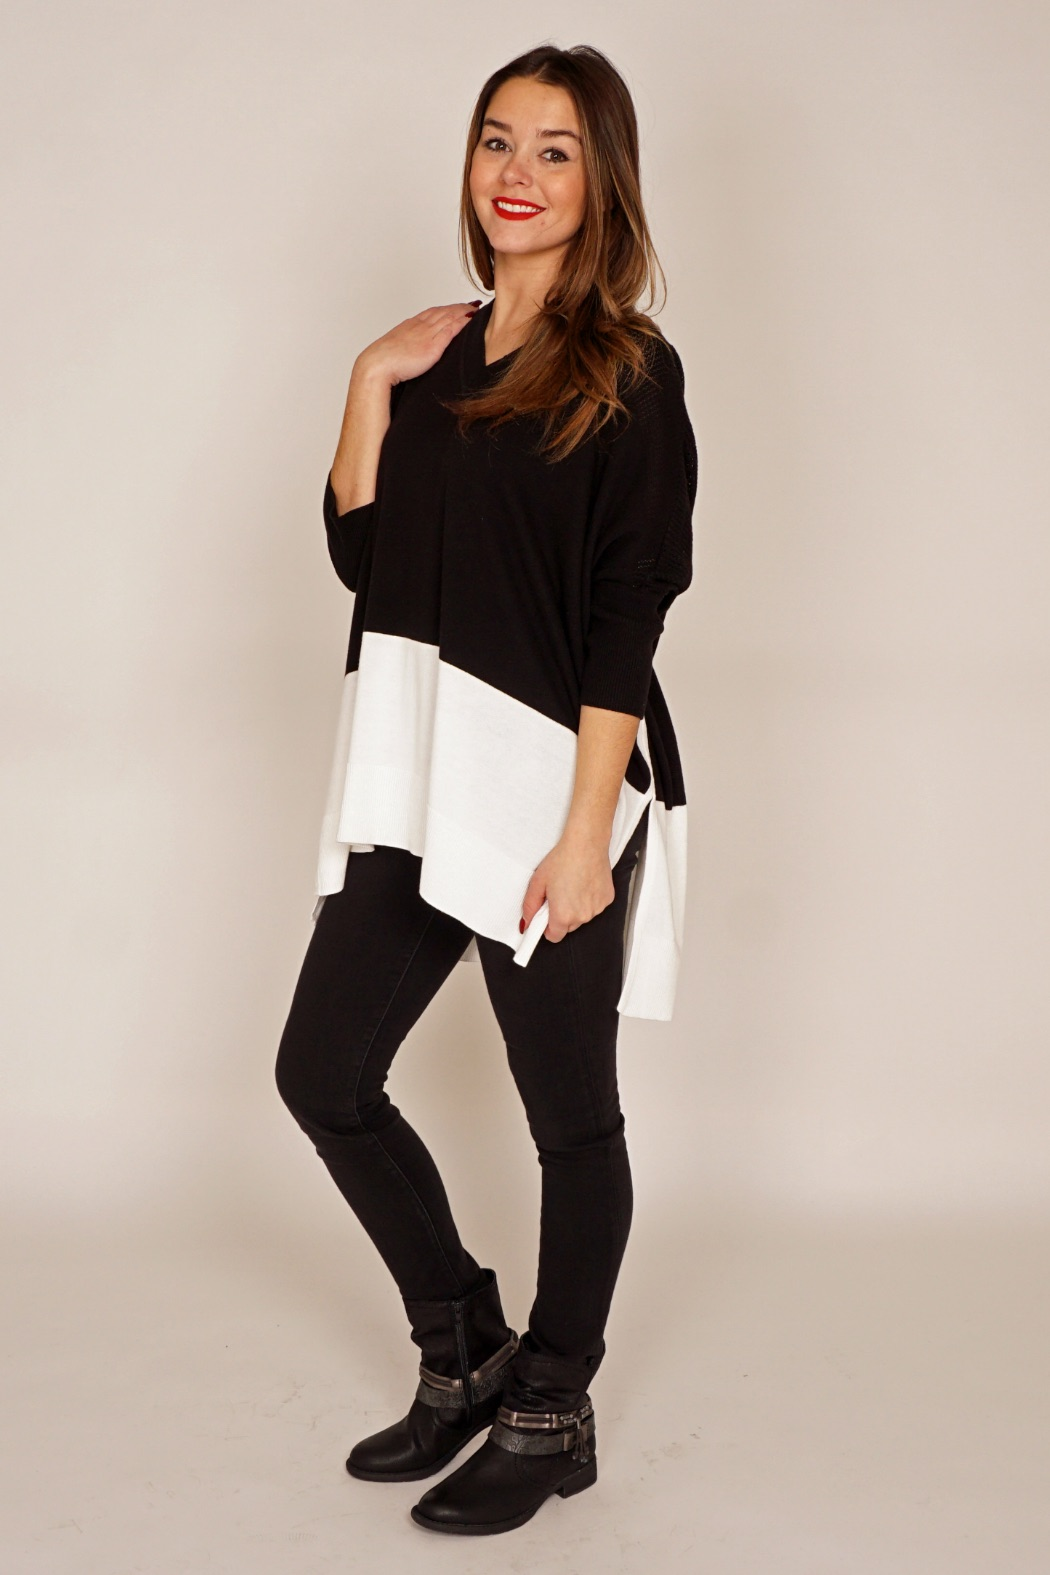 """Since the poncho's popularity is booming, it's time to take advantage of its benefits this season. The only rule necessary to keep in mind when wearing a poncho is that the large volume that it gives you on top must be offset by a slim/minimalist style on the bottom. The poncho is popular simply because it's so easy to wear. It goes with everything. One size fits all. It's never too tight. Season after season, ponchos retain their """"go to"""" popularity in our wardrobes – from cool Summer nights to the coldest days in December. They make the perfect in-between-days outerwear when it's just a little too warm to wear a coat. Juanita actually finds it warmer than a fall coat as the arms are closer to the body and it seems more effective blocking the wind. She's been a poncho lover since her early 20's. It's also easier to layer, as it fits over bulkier sweaters, whereas it can be much more constricting trying to get that sweater into a coat."""